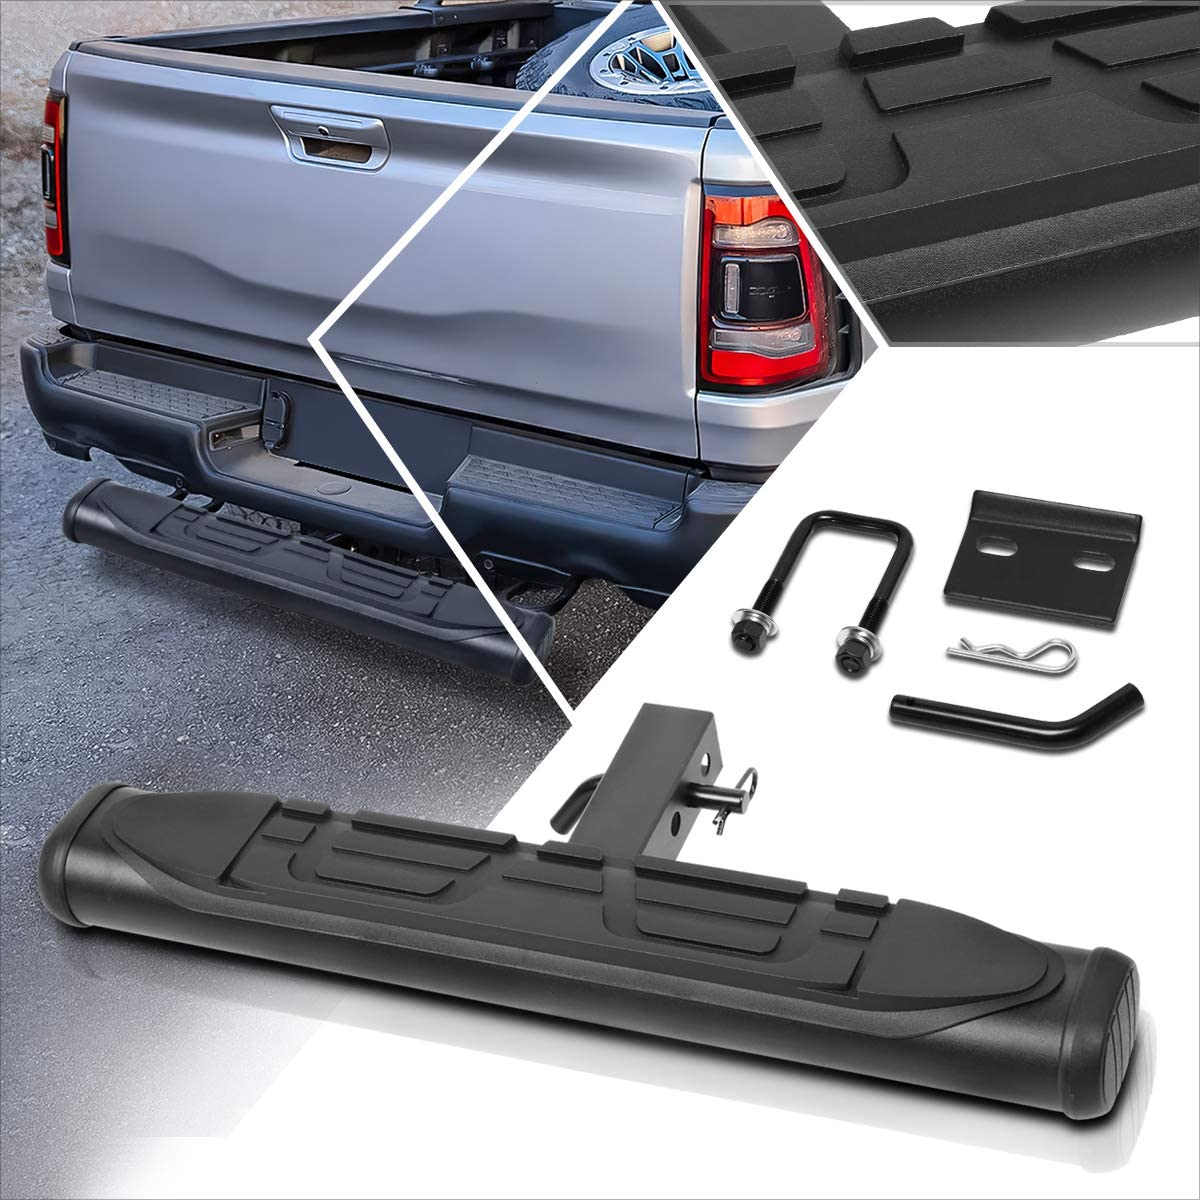 Steel Trailer Towing Lowest price challenge Hitch Step Boston Mall Fits Receiver Rear Bump Inches 2